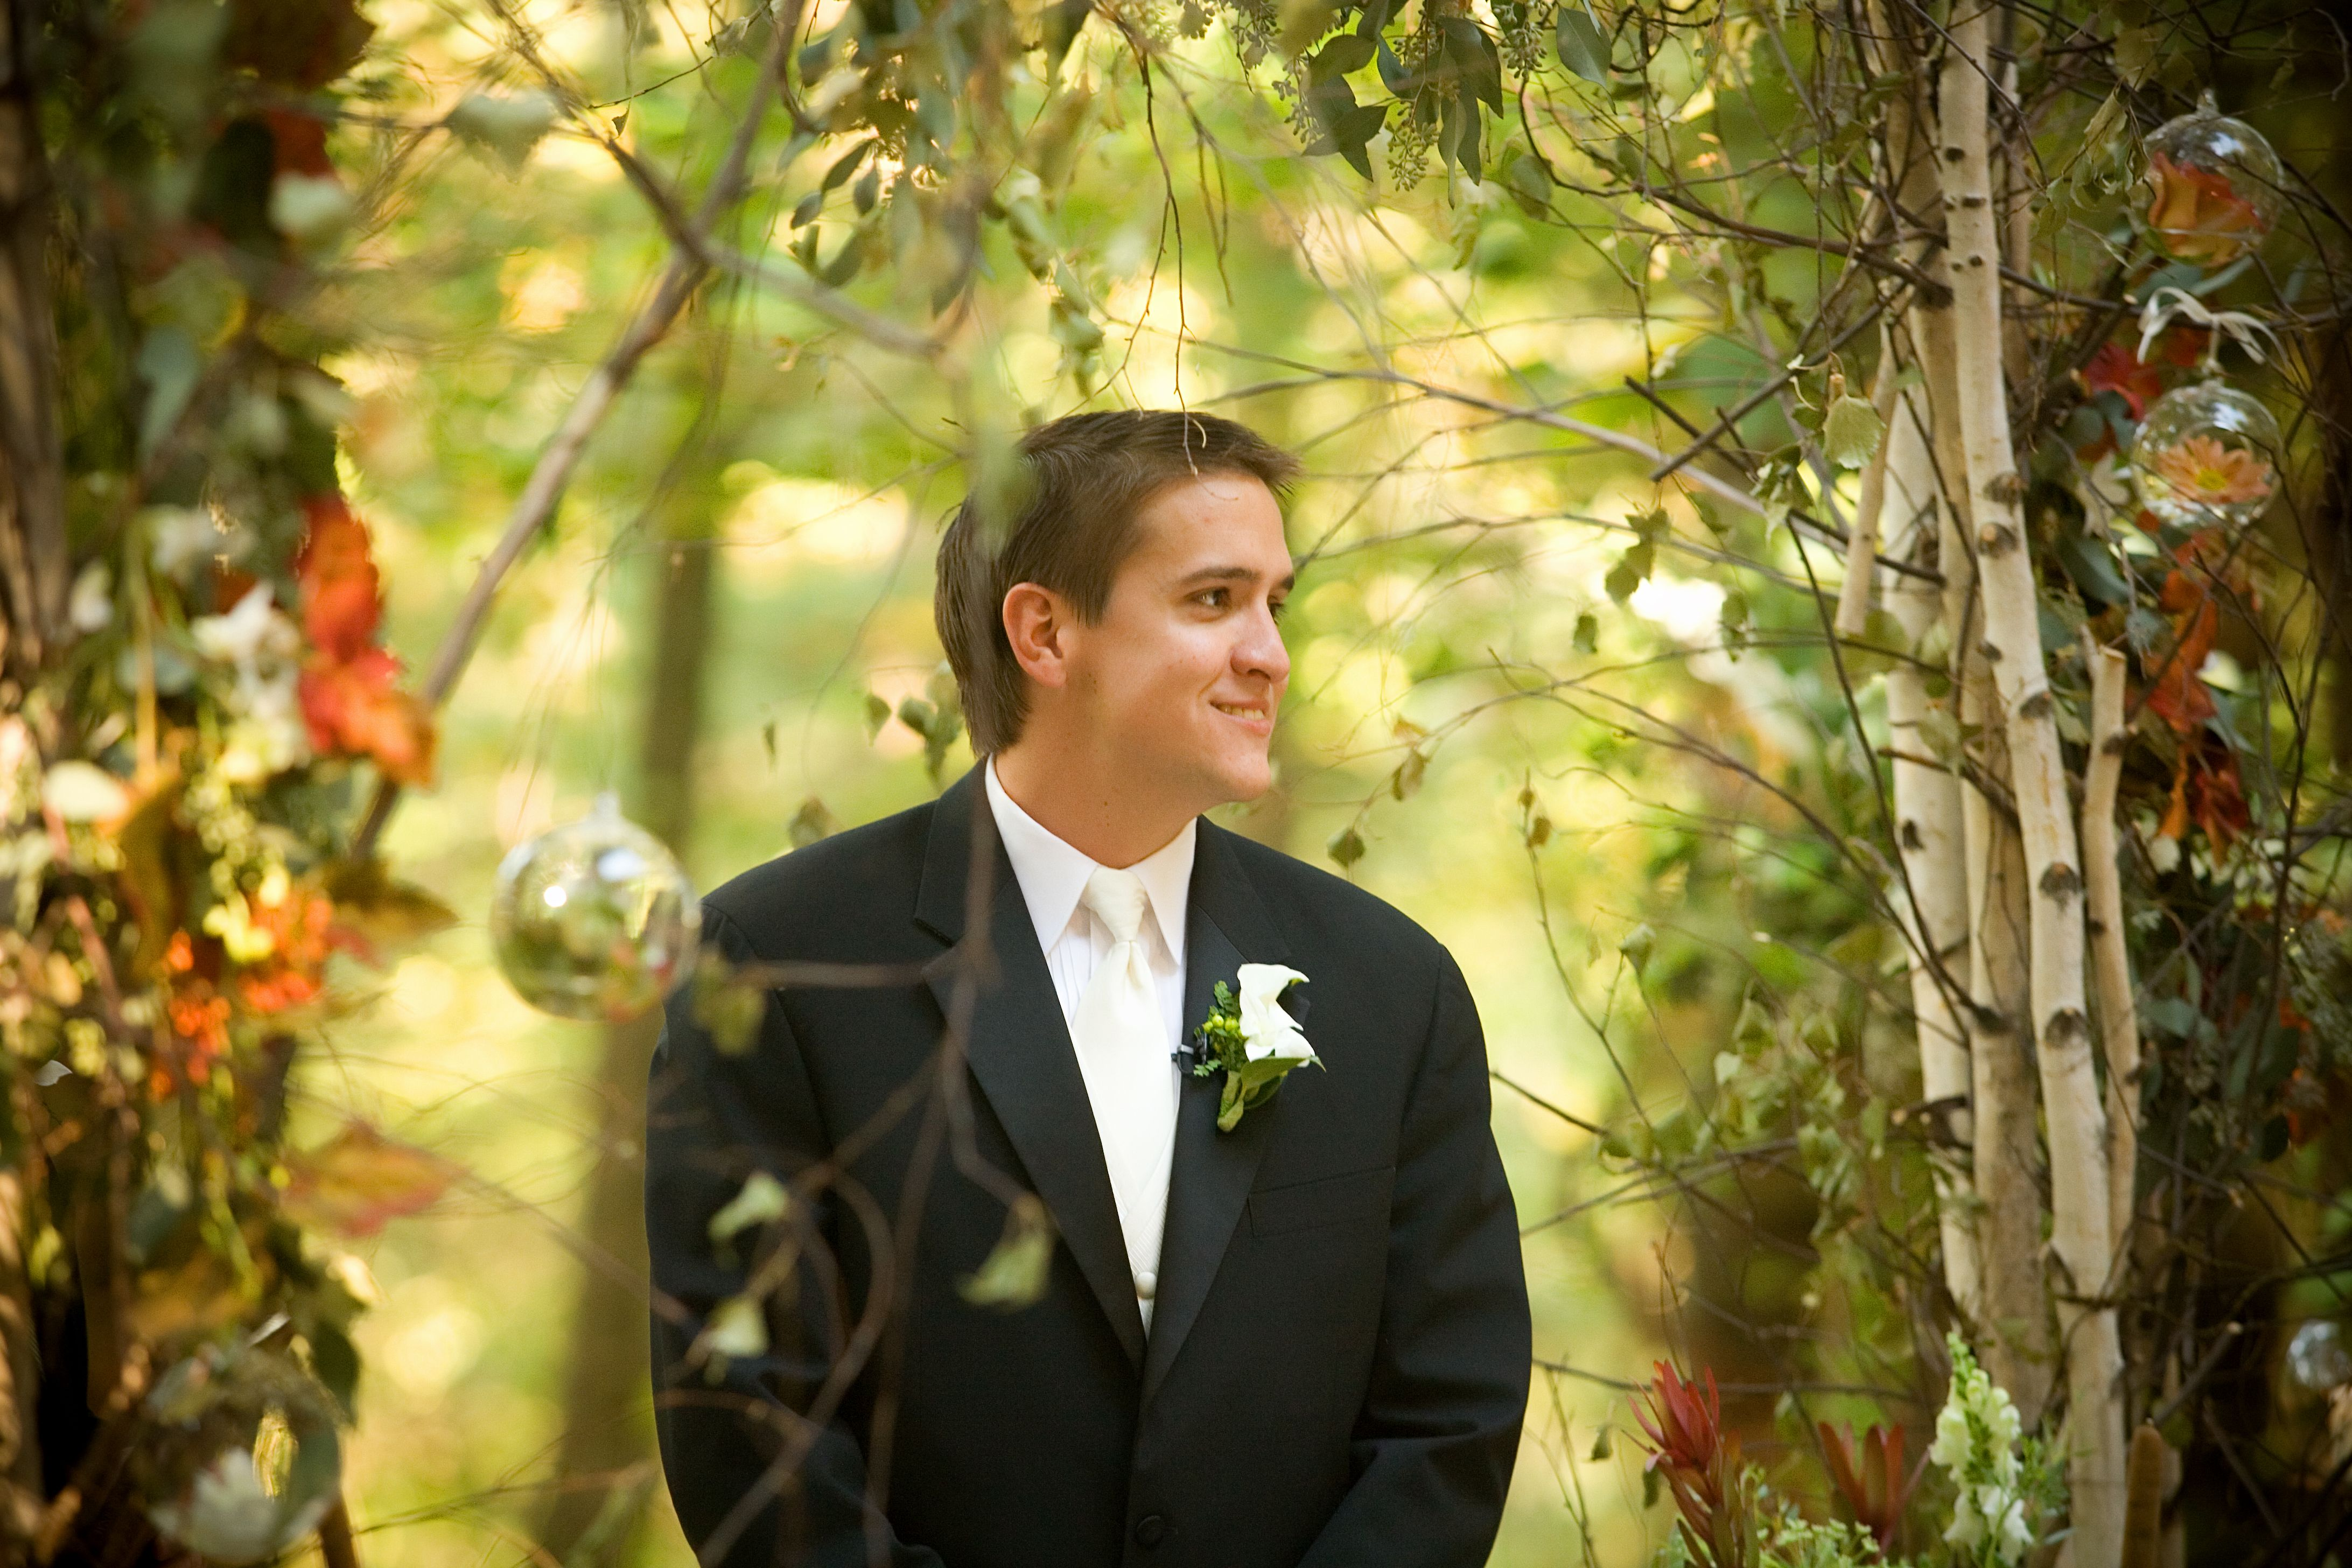 My son in law watching his Bride walk down the aisle.